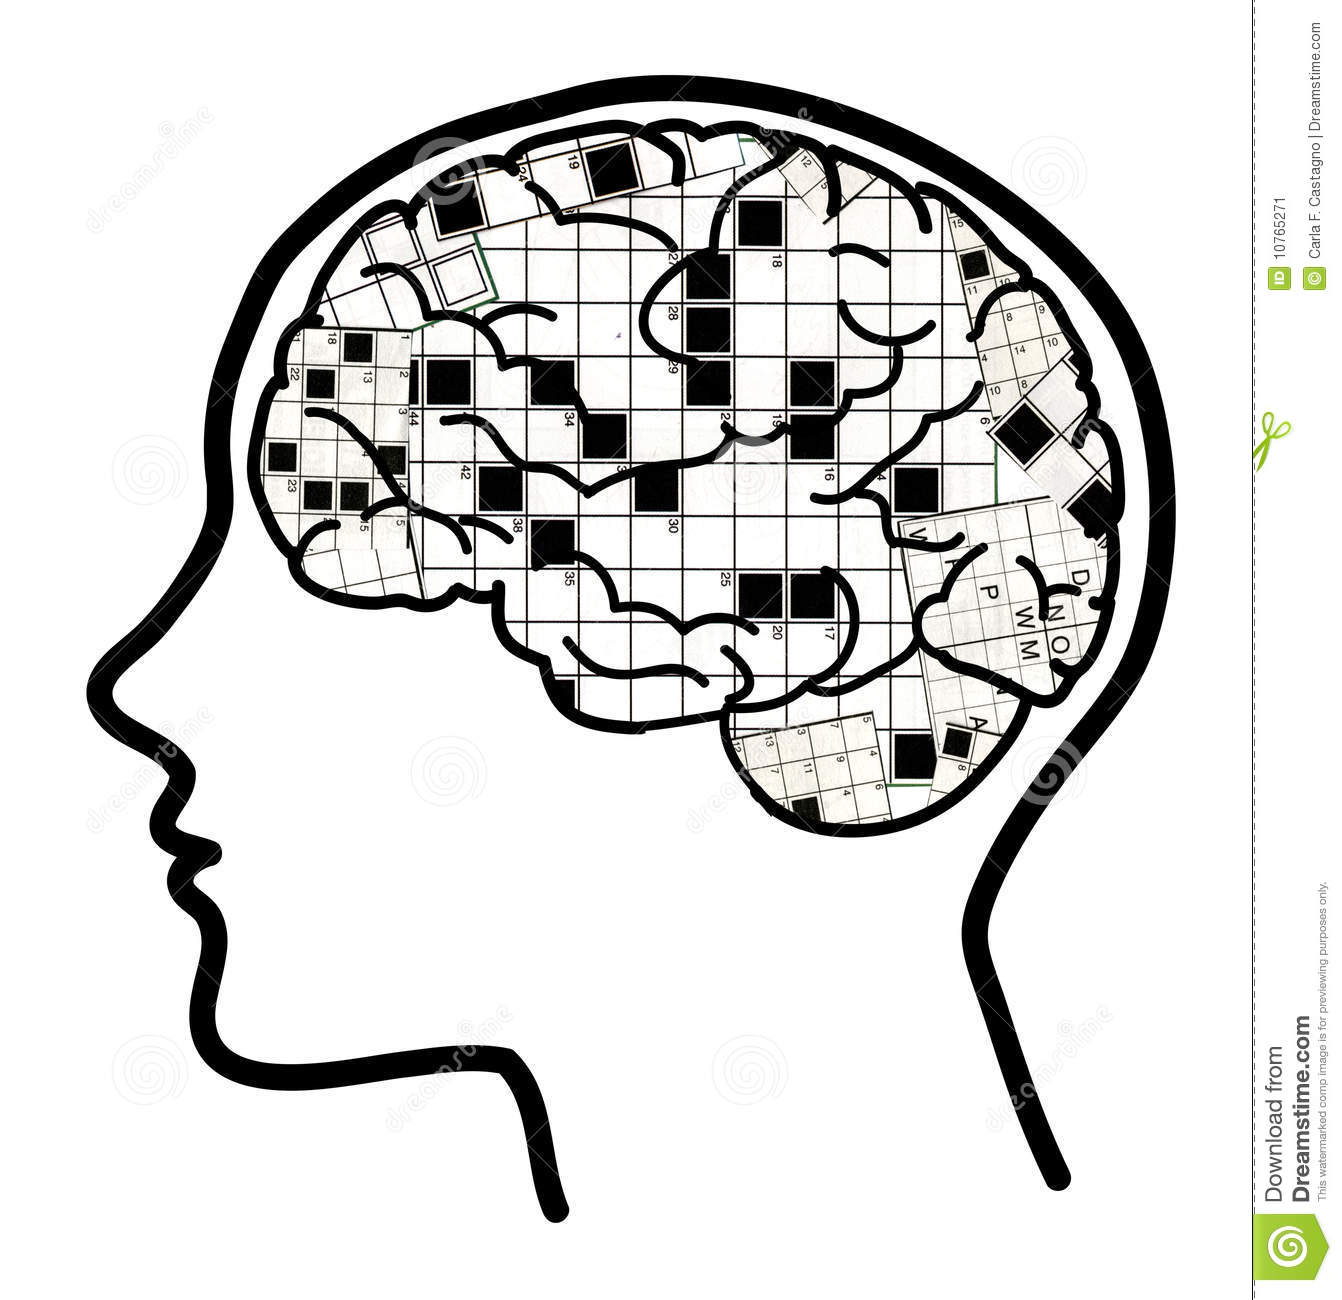 Crossword In Brain Collage Stock Vector Illustration Of